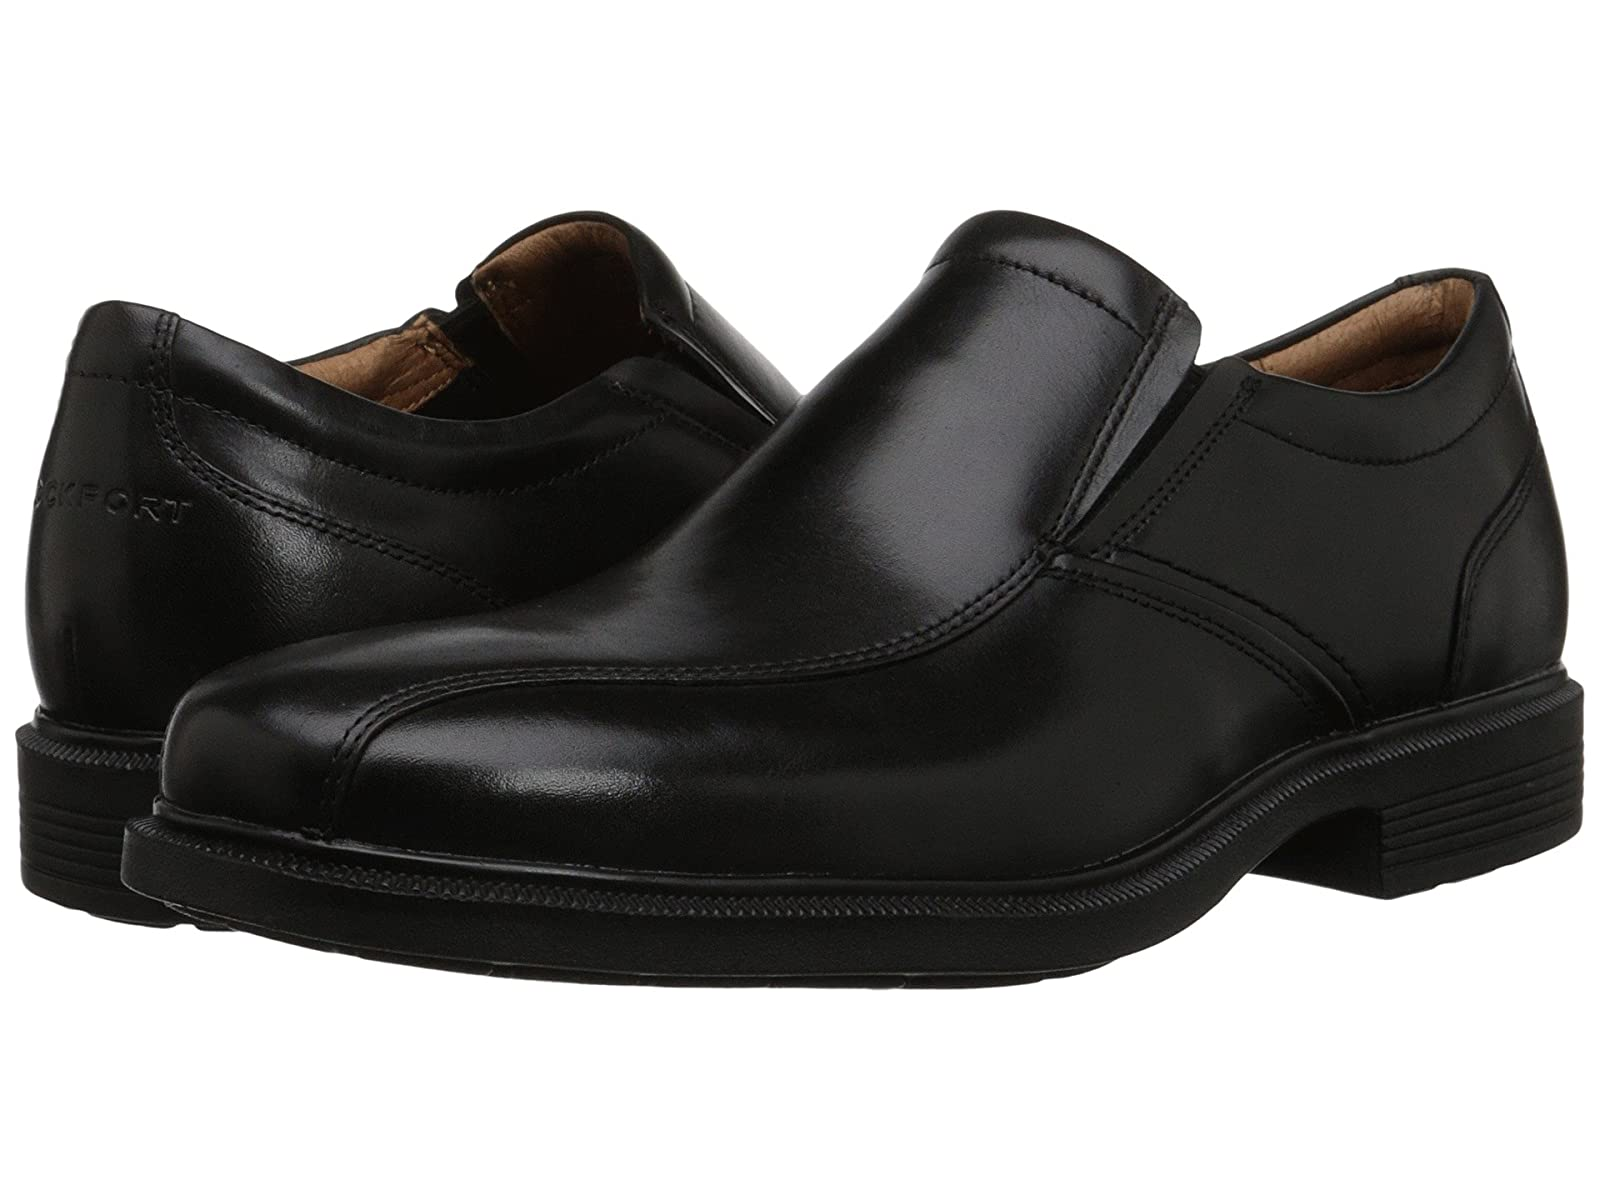 Rockport Dressports Luxe Bike Toe Slip OnAtmospheric grades have affordable shoes